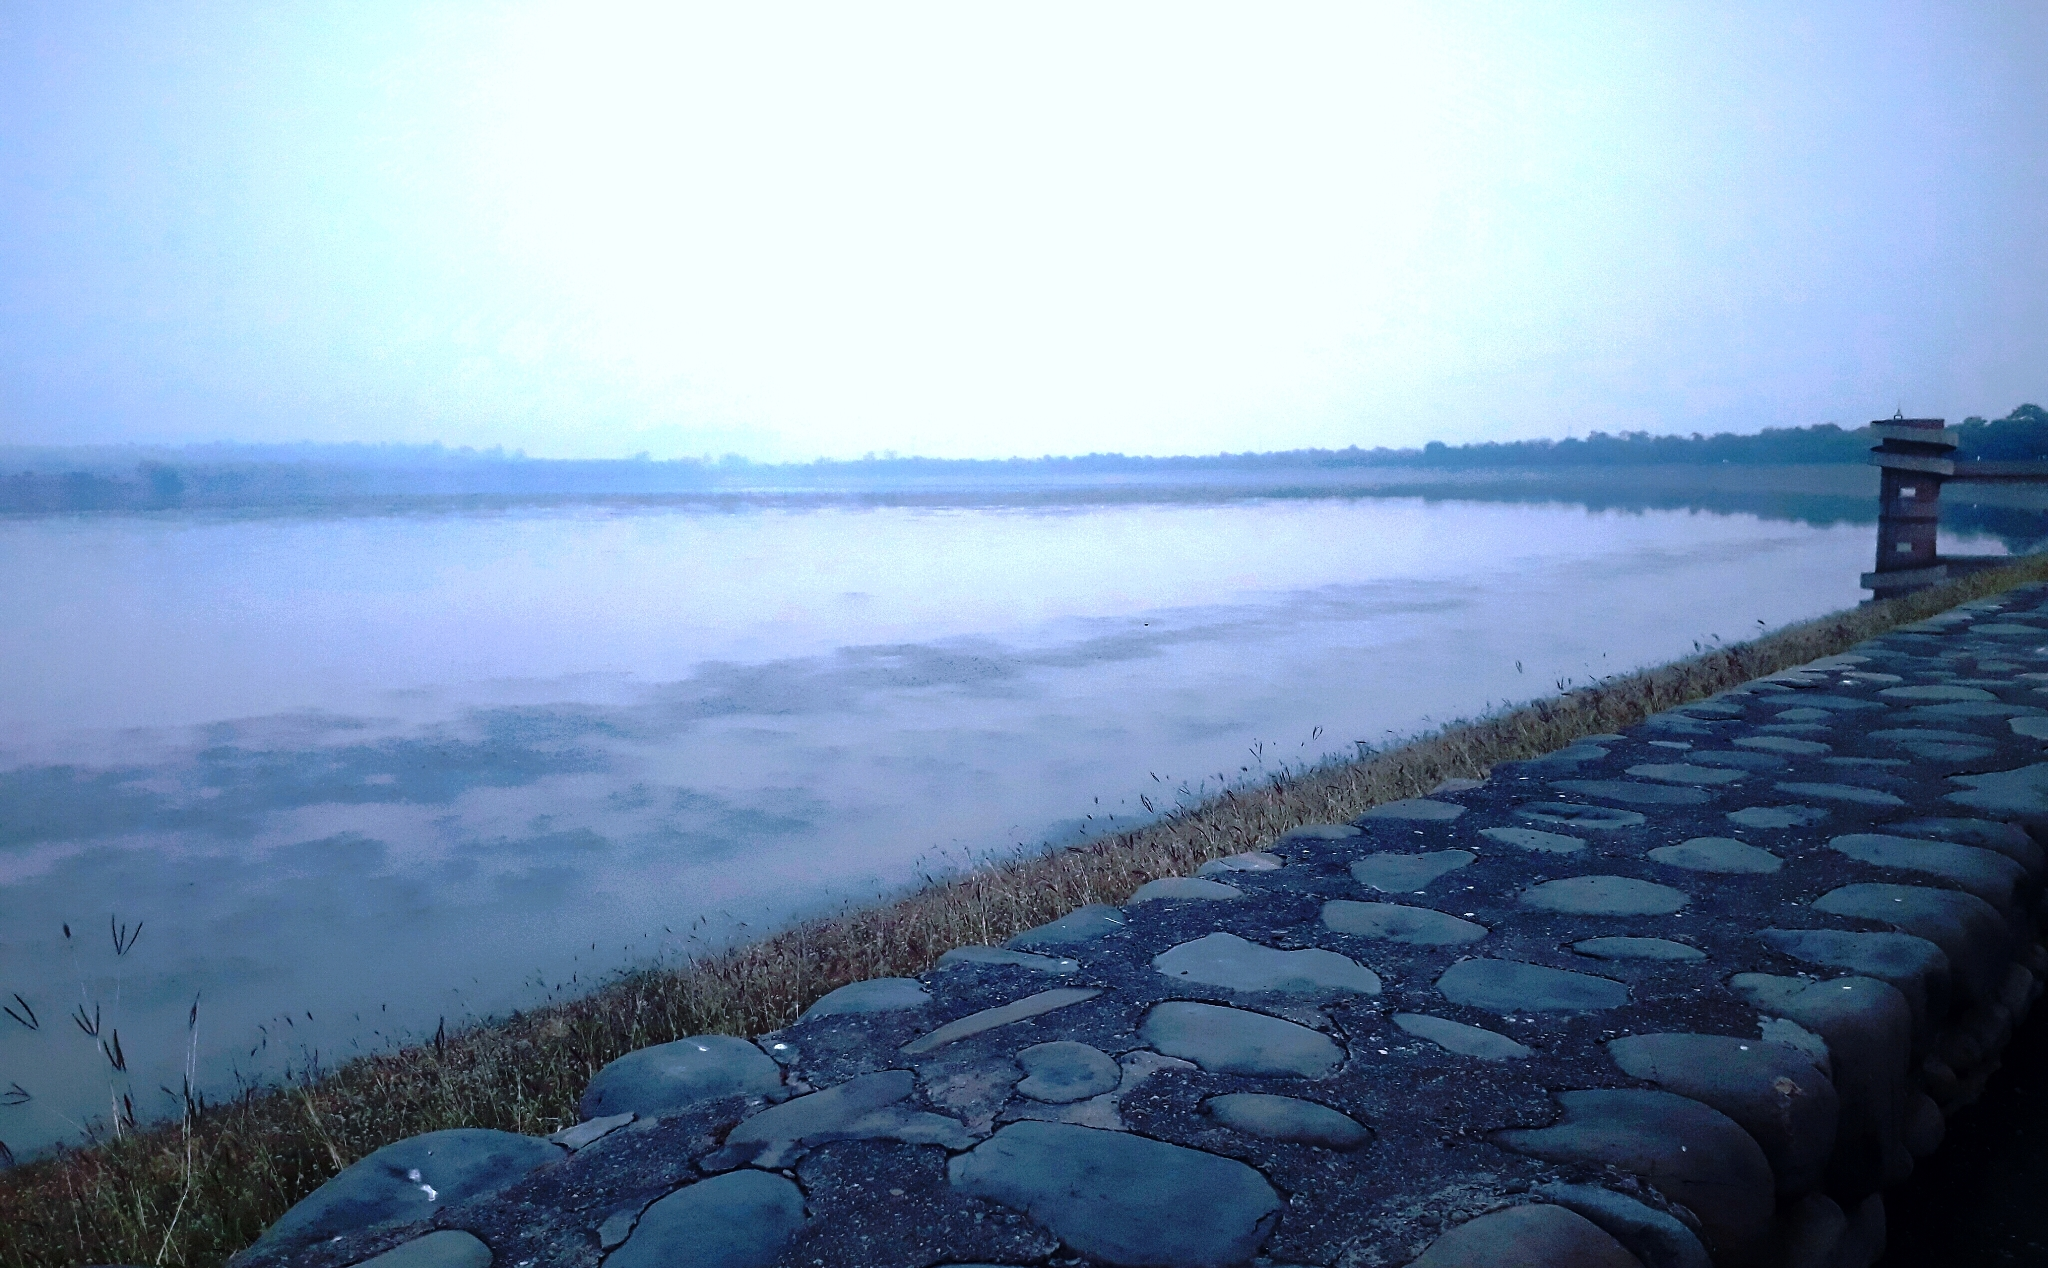 essay on sukhna lake chandigarh Rose garden, chandigarh the zakhir hussein rose garden is a 30 acre botanical garden in the city of chandigarh home to 50000 rose bushes spread over 1600 species it is asia's largest rose garden.